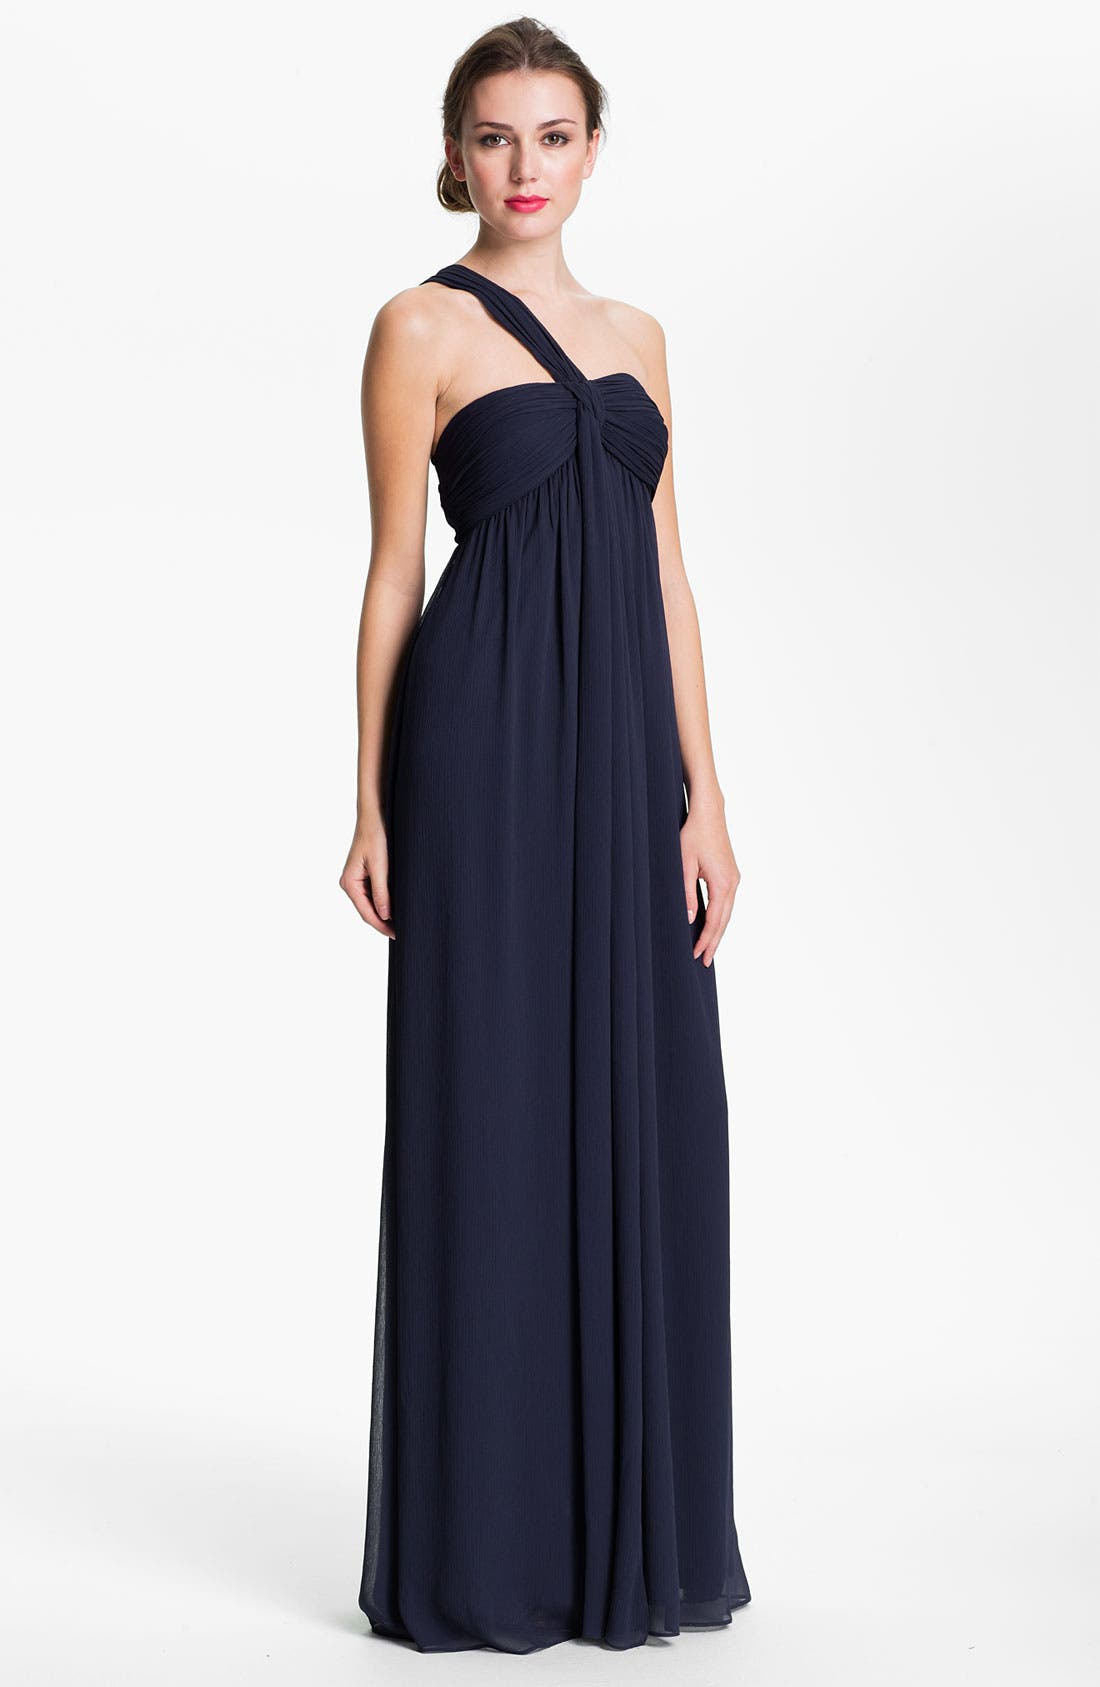 Main Image - Max & Cleo One Shoulder Chiffon Gown